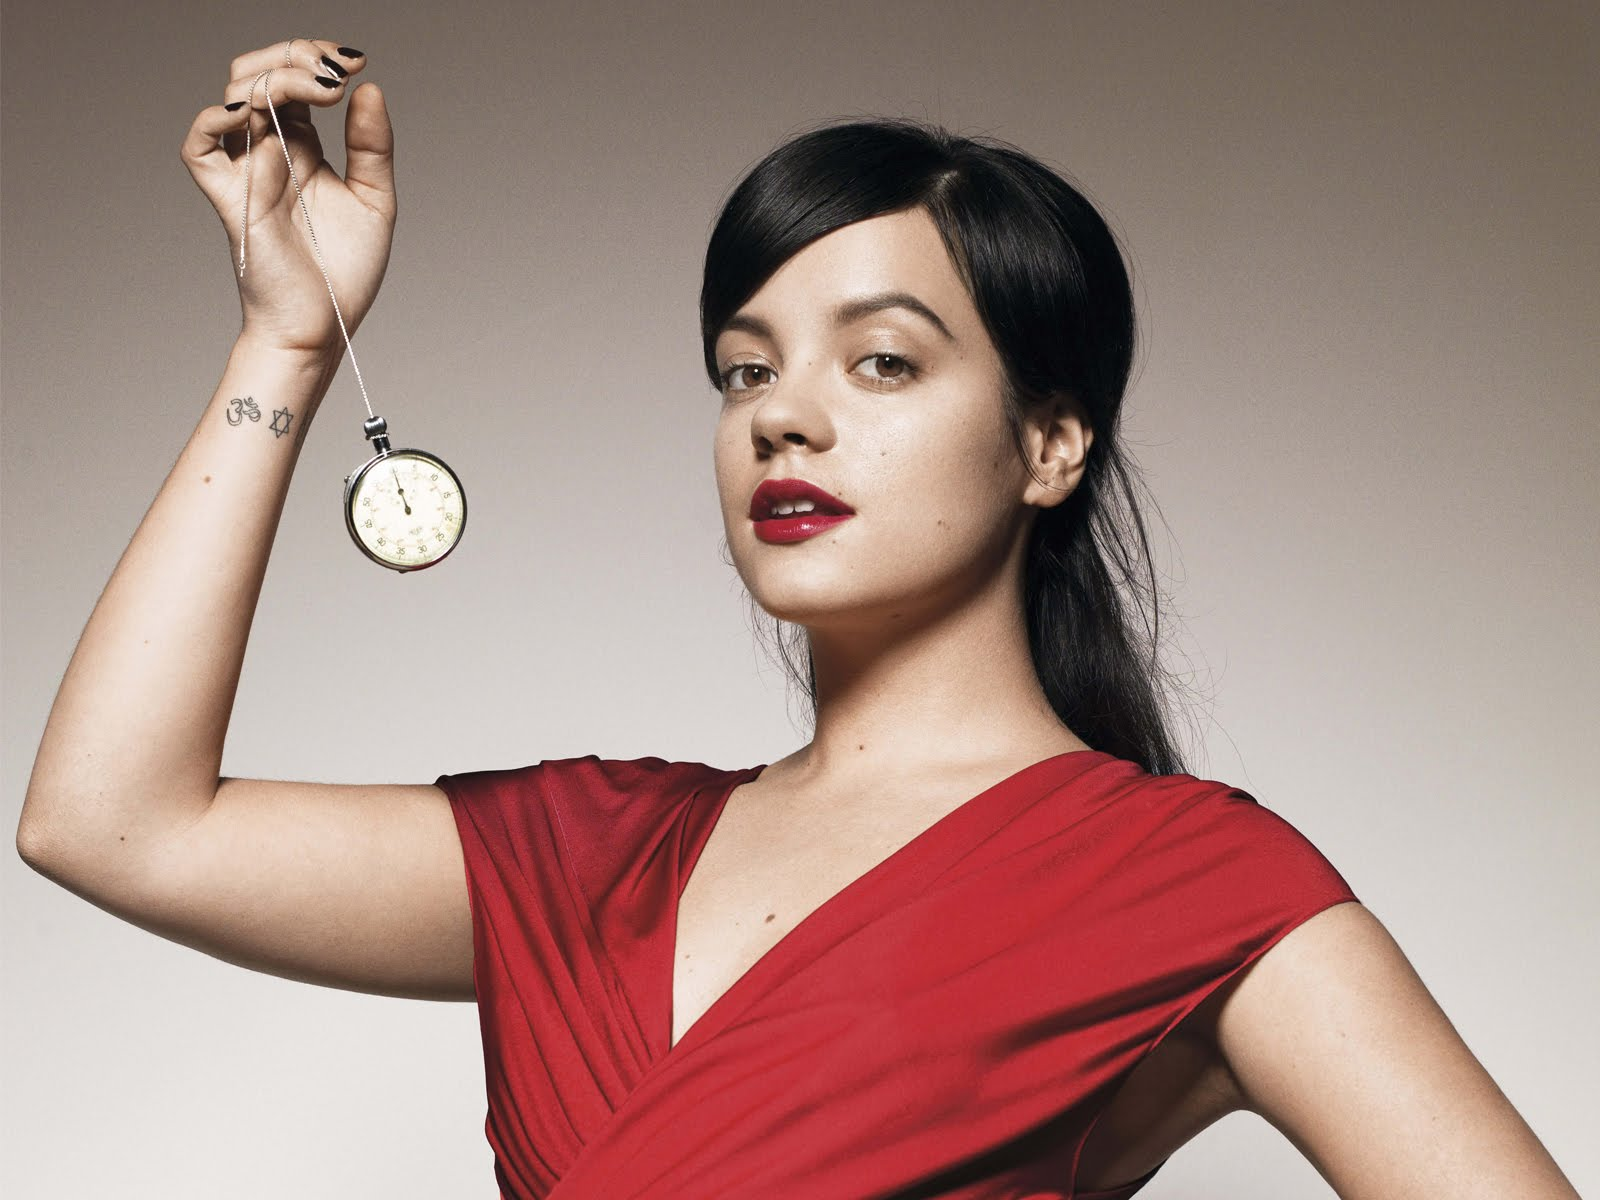 lily allen переводlily allen smile, lily allen not fair, lily allen littlest things, lily allen 22, lily allen fu you, lily allen littlest things скачать, lily allen smile перевод, lily allen скачать, lily allen smile скачать, lily allen - the fear, lily allen alfie, lily allen sheezus, lily allen ldn, lily allen перевод, lily allen - not fair lyrics, lily allen слушать, lily allen 22 lyrics, lily allen the fear lyrics, lily allen 22 скачать, lily allen lyrics